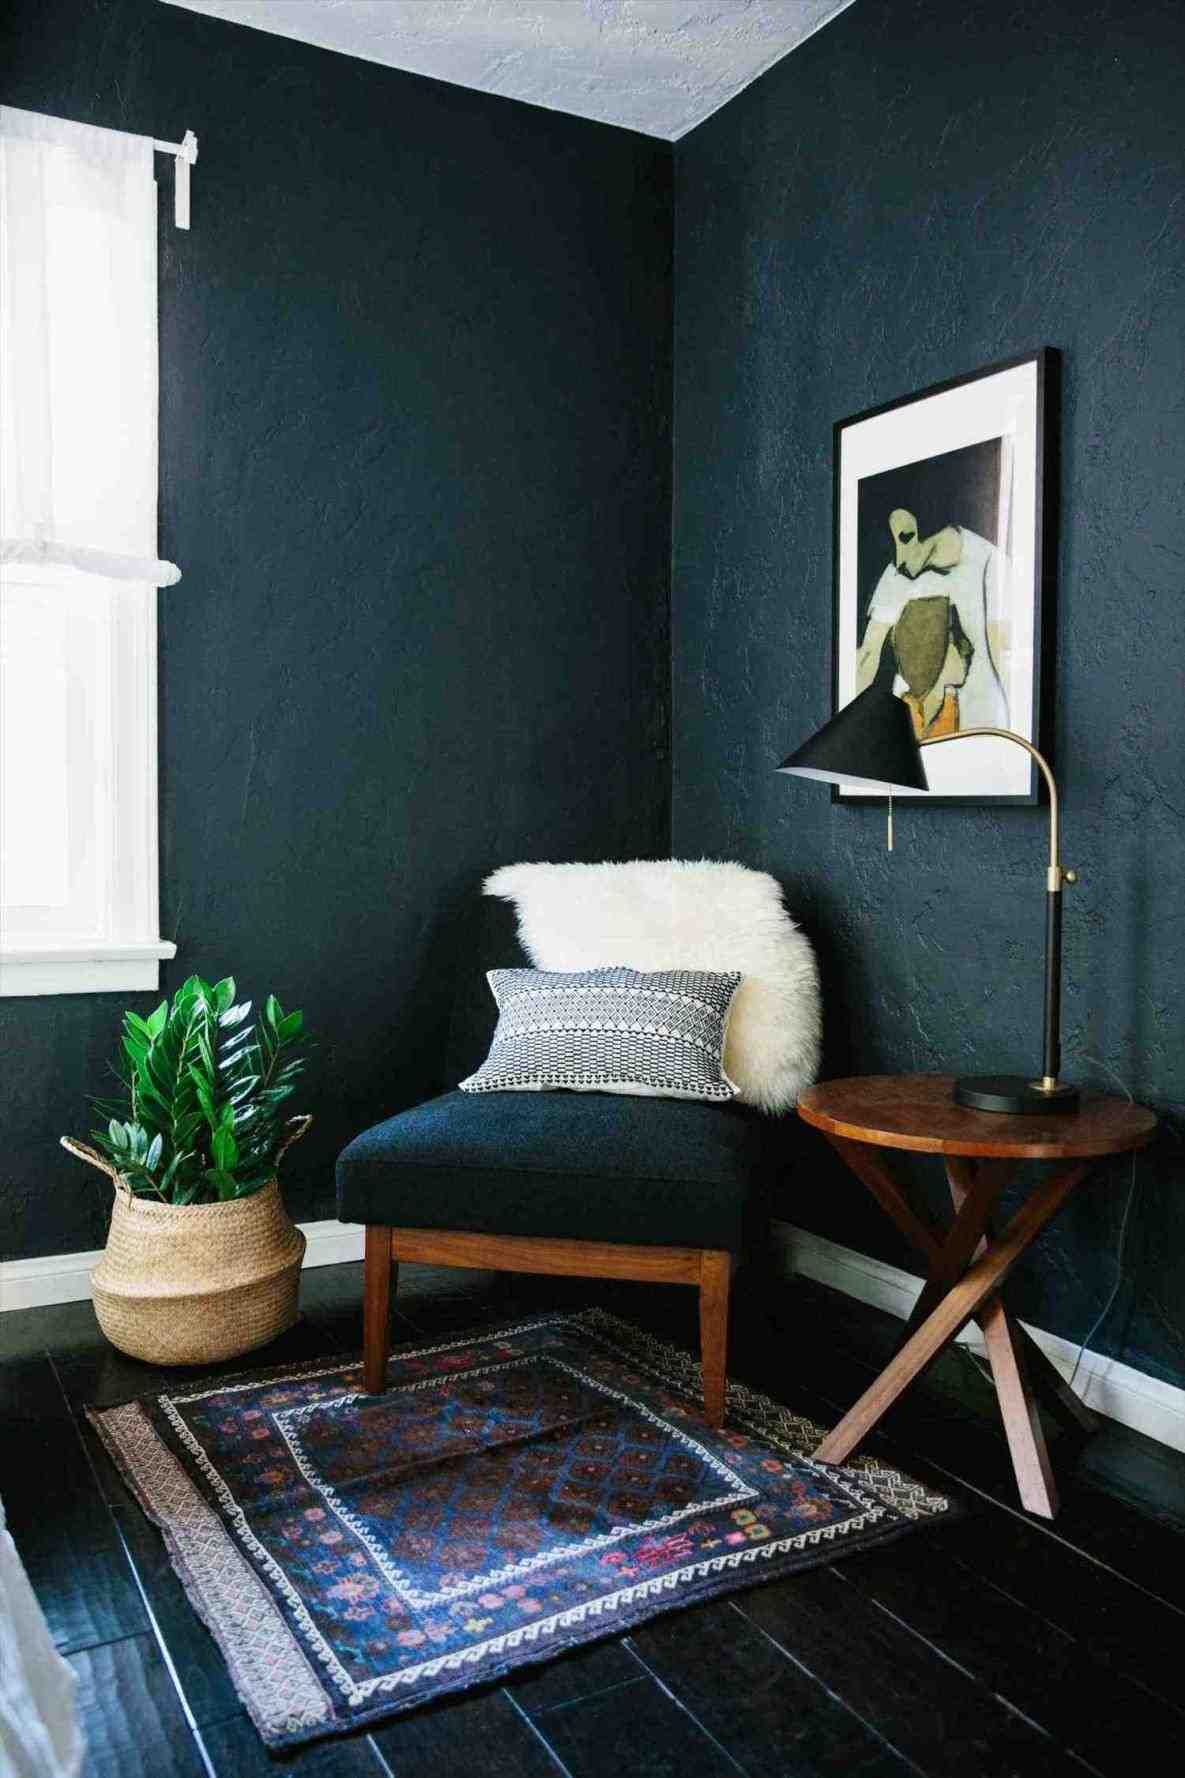 Bedroom Design Best Green Paint Colors For Bedroom Forest Green Bedroom Walls Forest Green Room Navy Blue And Grey Bedroom Idea Small Room Design Interior Home